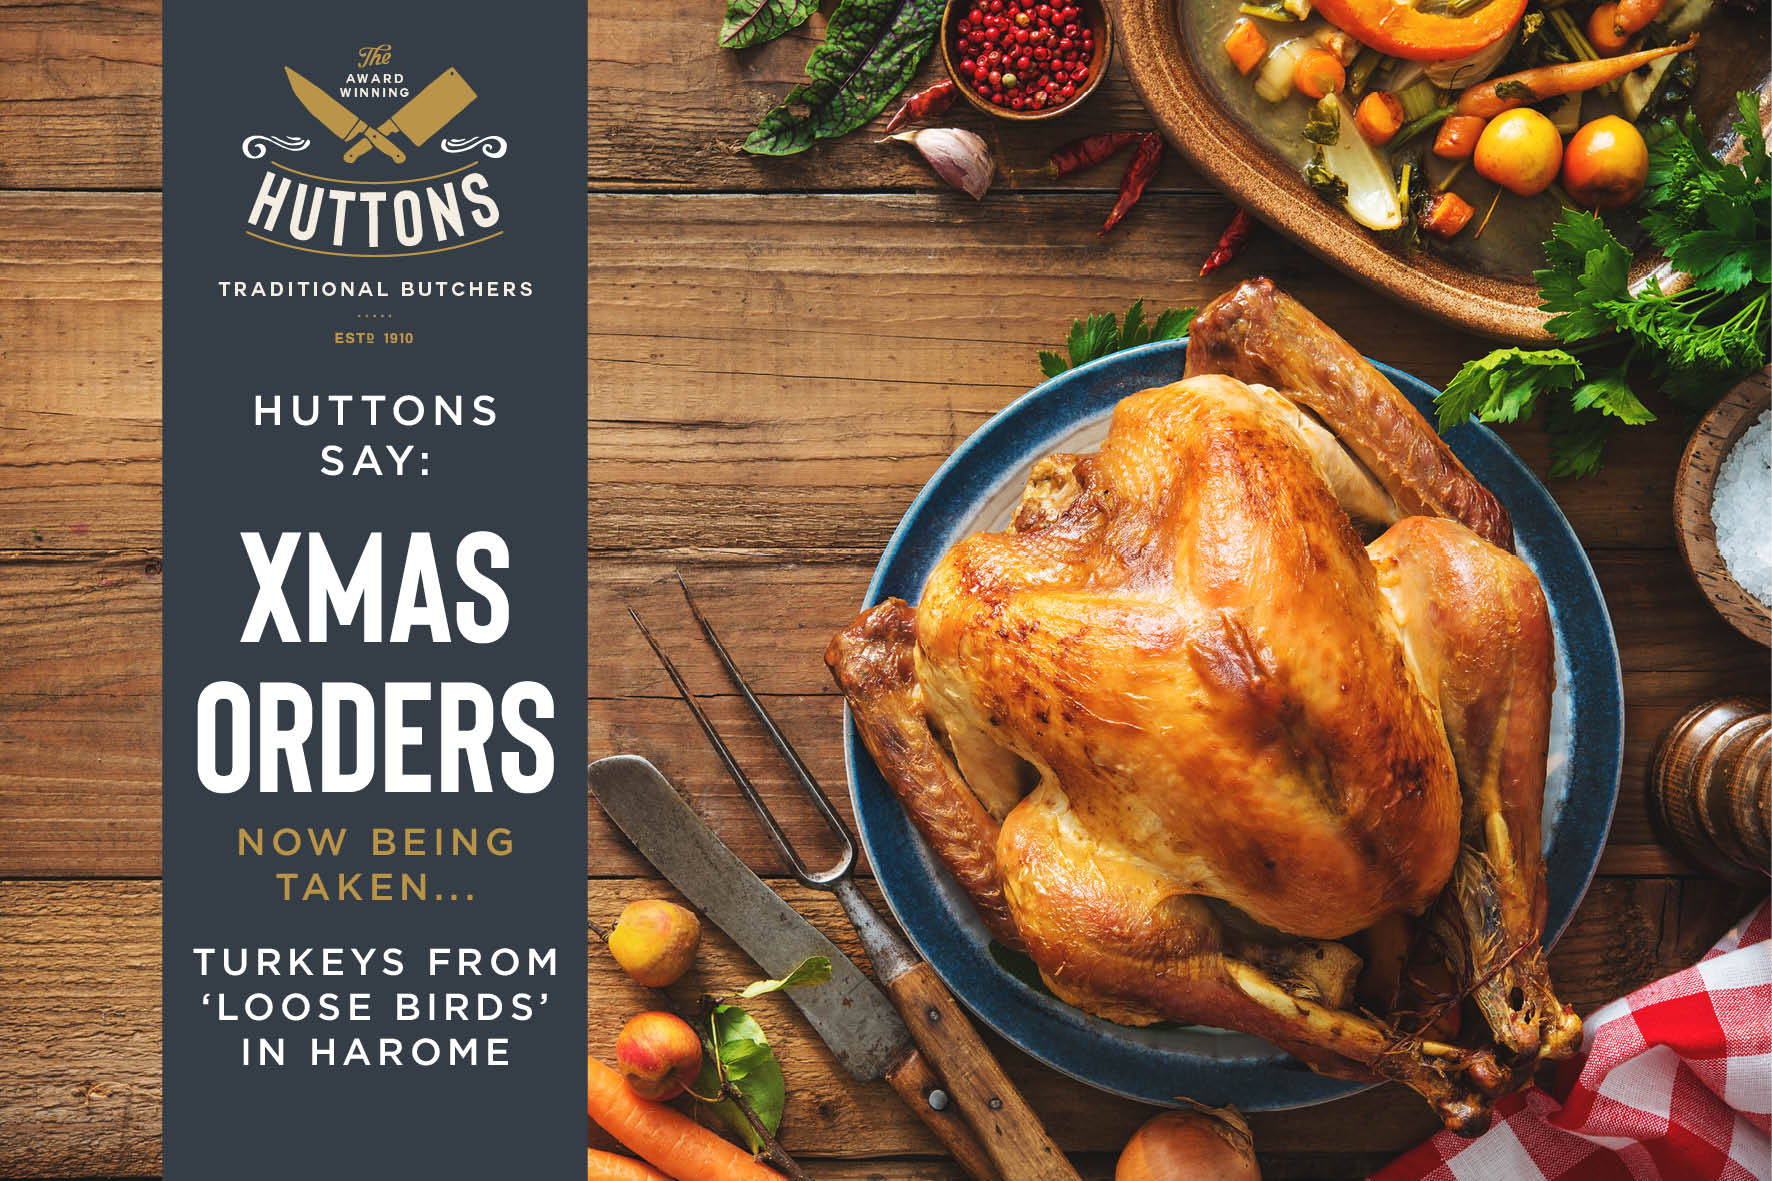 huttons_butchers_christmas_2.jpg